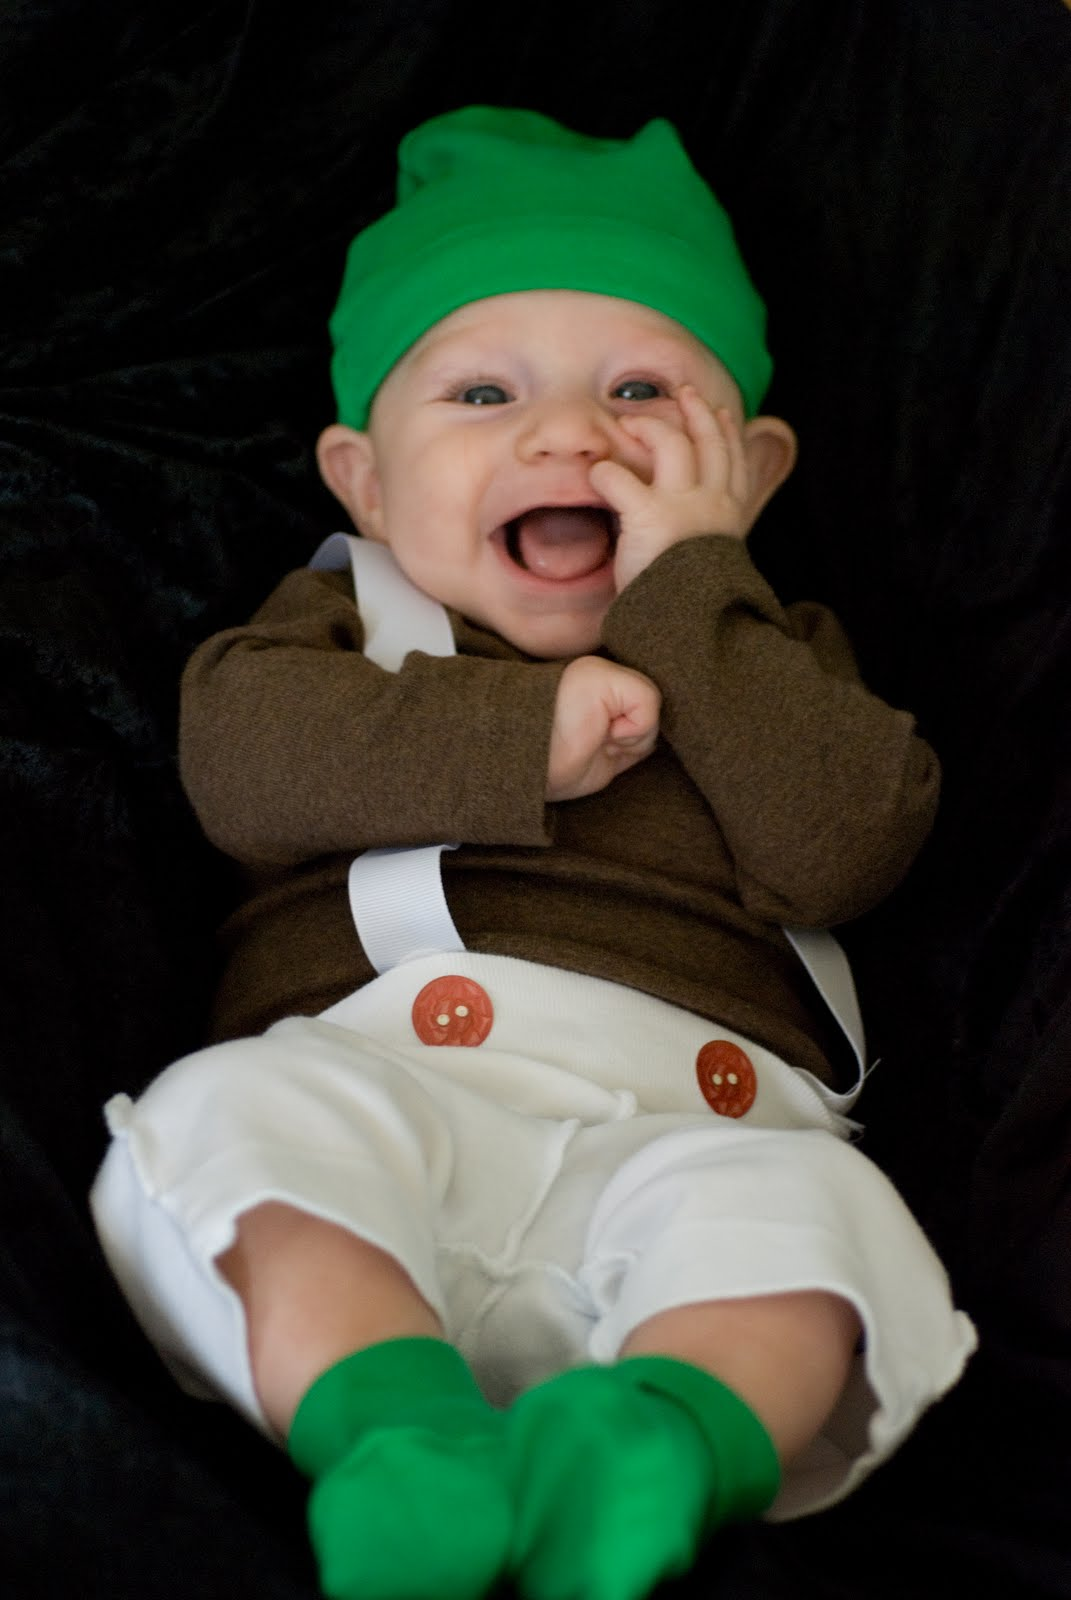 Bringing Baby Make Oompa Loompa Costume